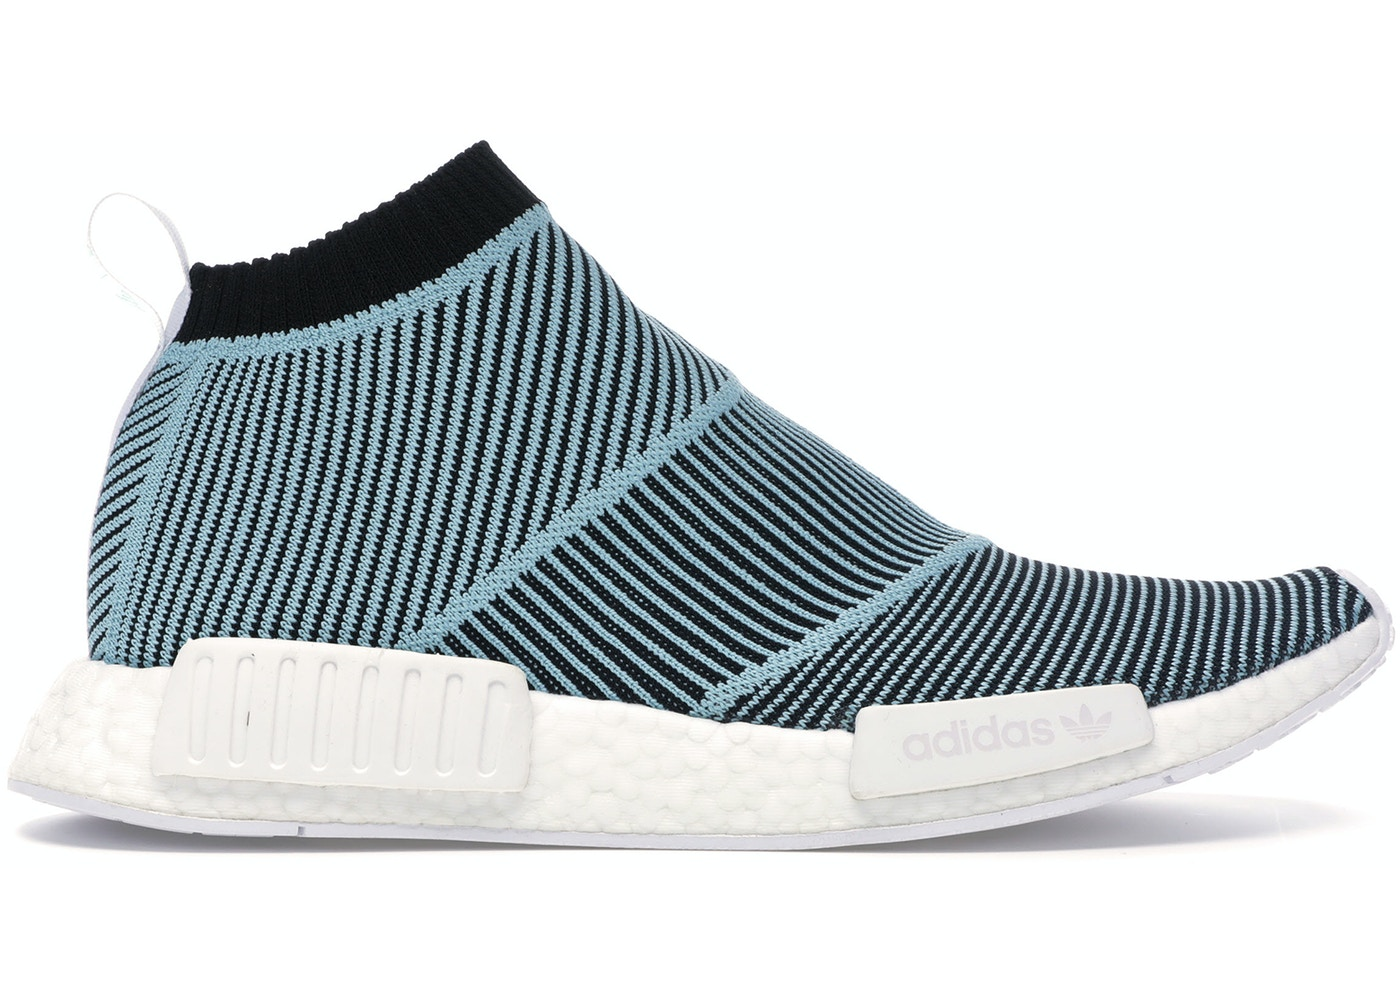 Cava A pie Implacable  Buy adidas NMD CS1 Shoes & Deadstock Sneakers